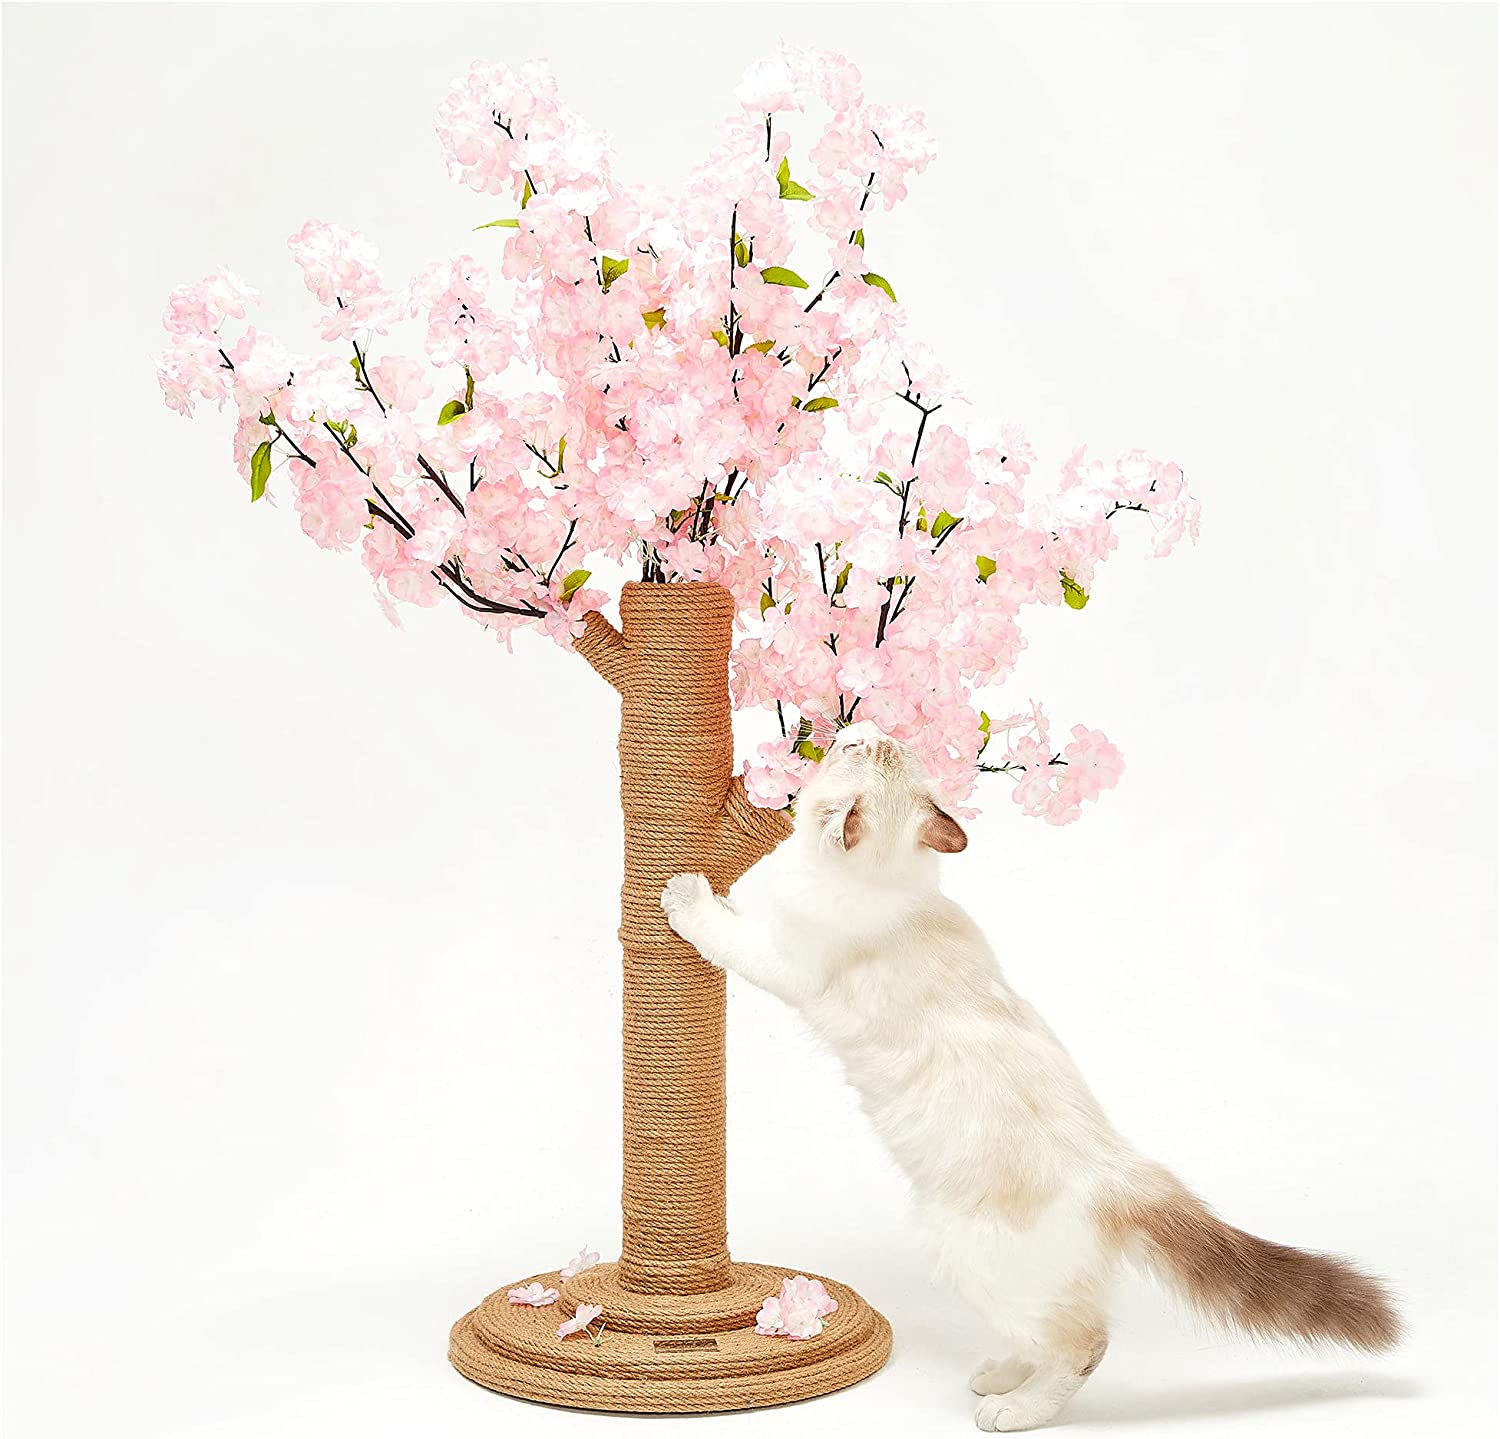 VETRESKA Cat Tree with Cherry Blossom Cat Scratching Post, Cat Condo Cat Activity Tree with Sisal Rope, Vertical Cat Scratcher for Cat, Kitten, Modern Cat Furniture Home Decor